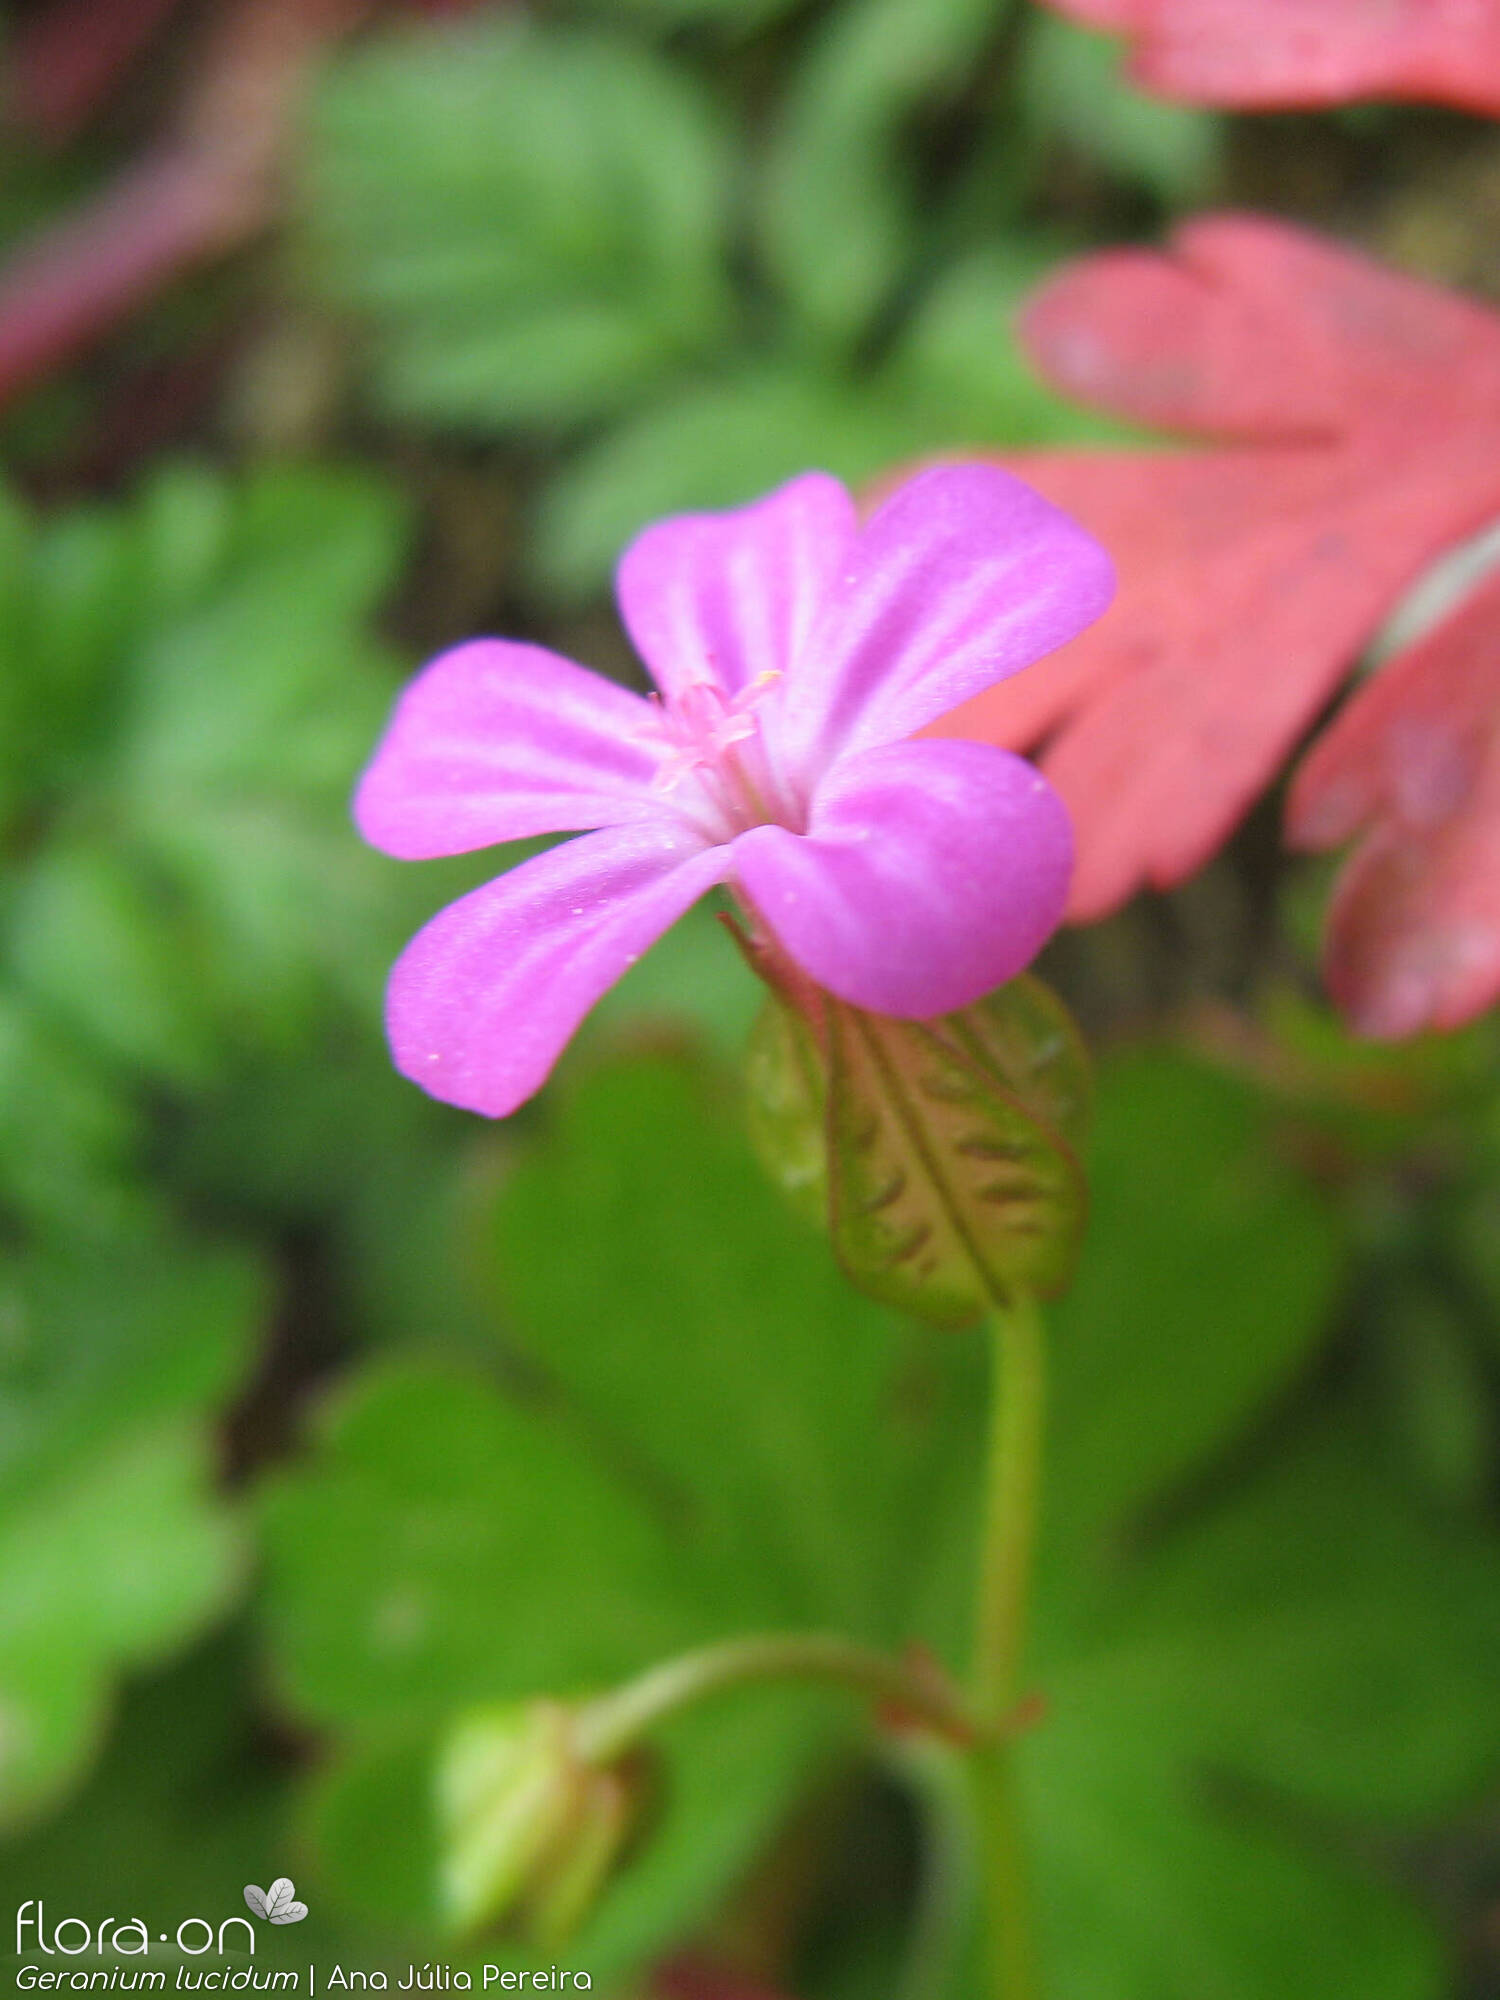 Geranium lucidum - Flor (close-up) | Ana Júlia Pereira; CC BY-NC 4.0